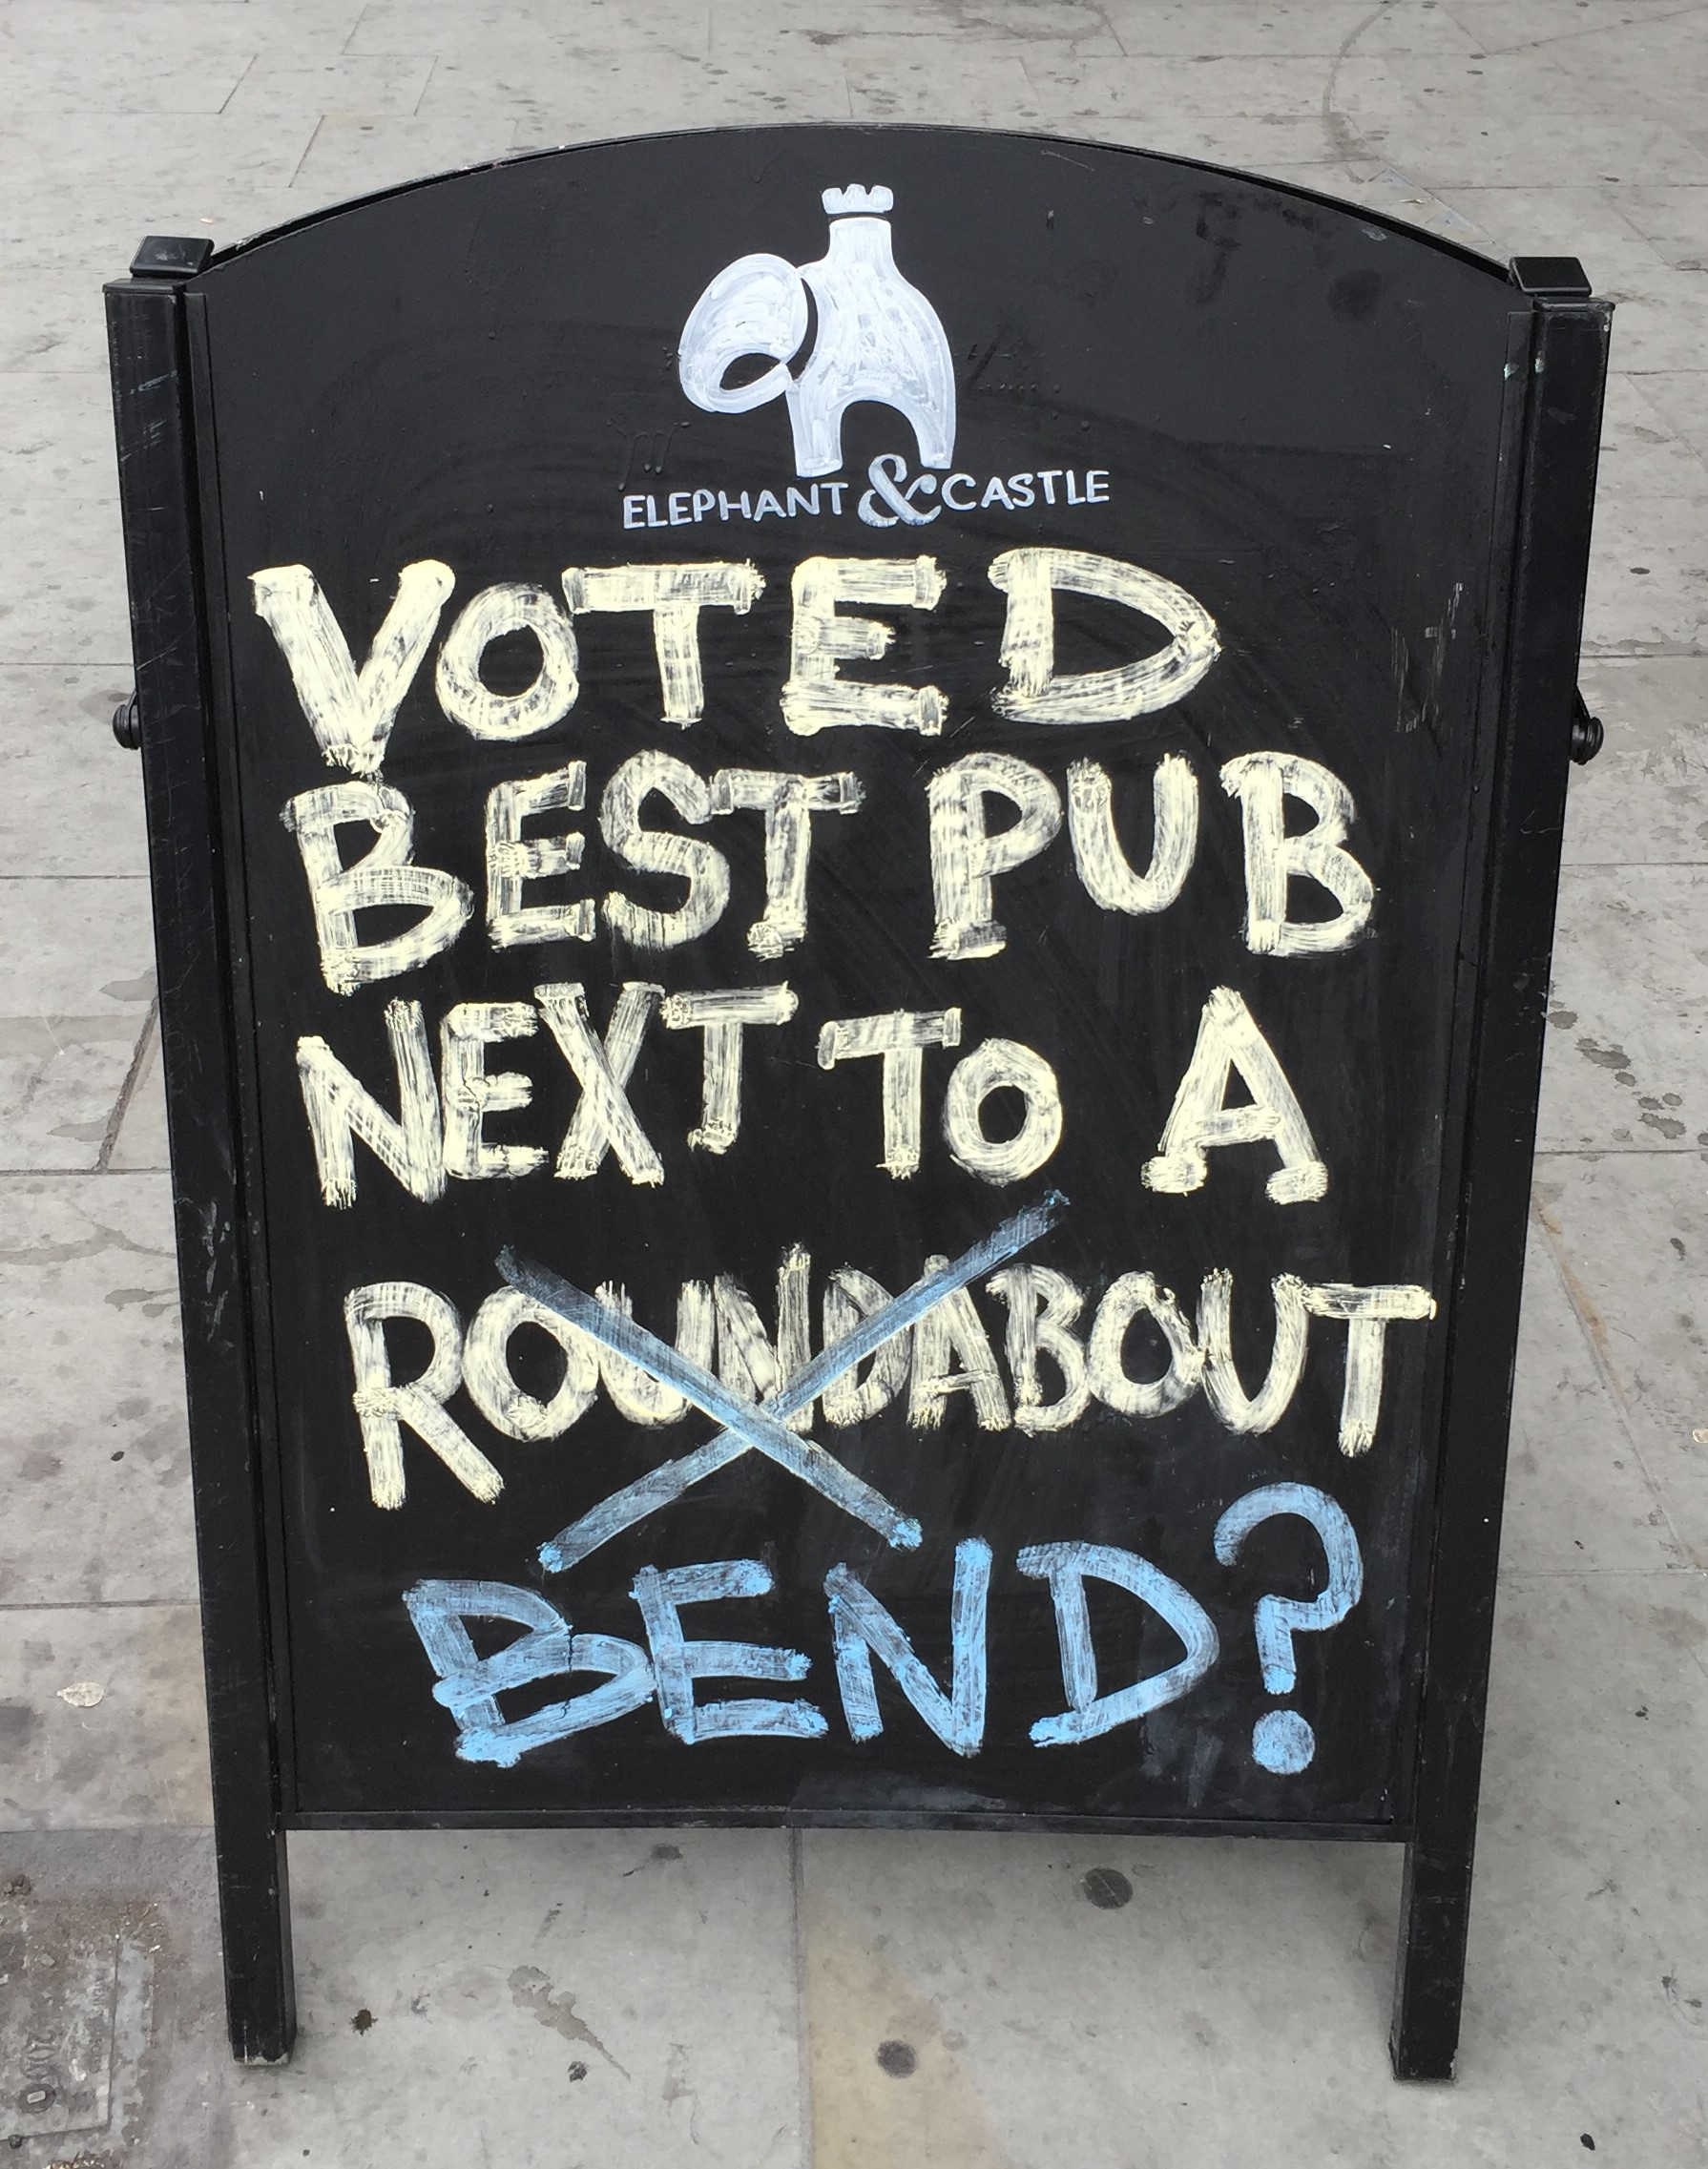 Voted best pub next to a bend sign at The Elephant & Castle pub - kenningtonrunoff.com